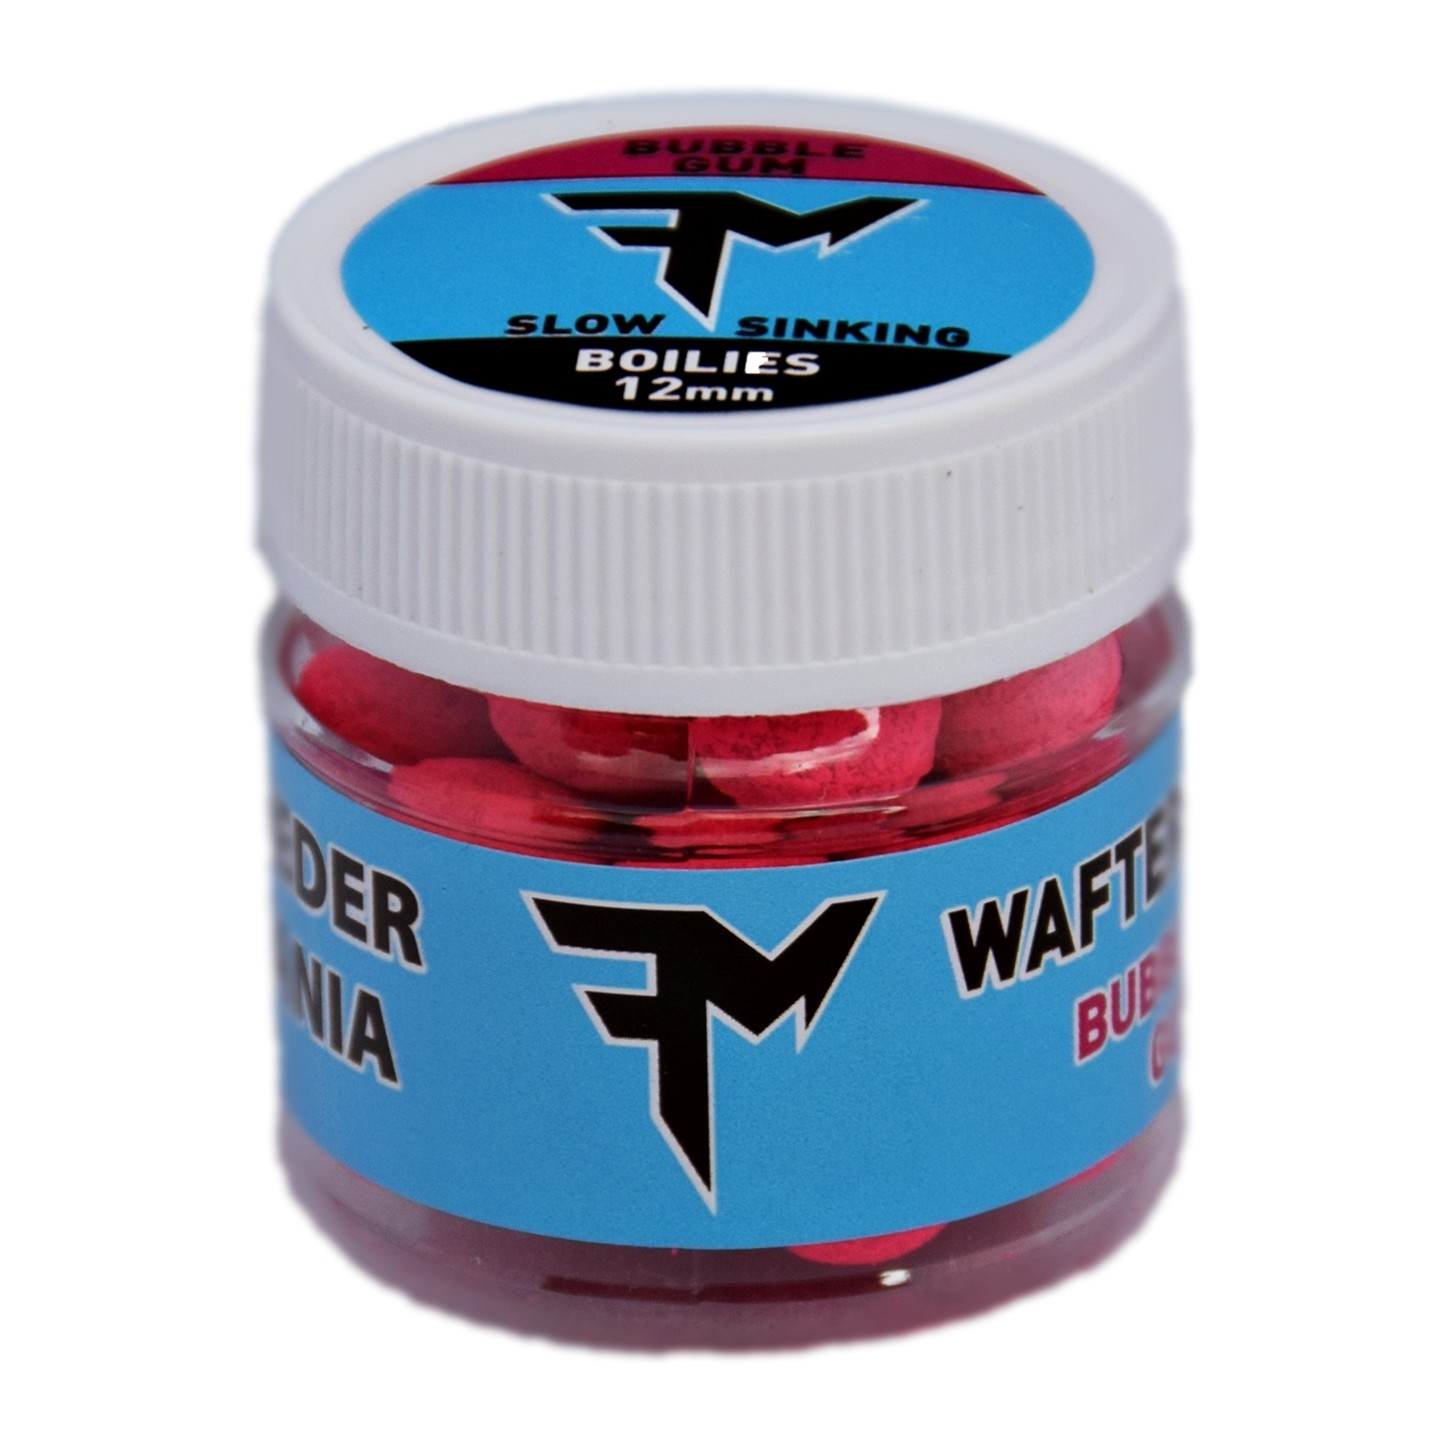 FEEDERMANIA Wafter - Bubble Gum 12mm, 25g